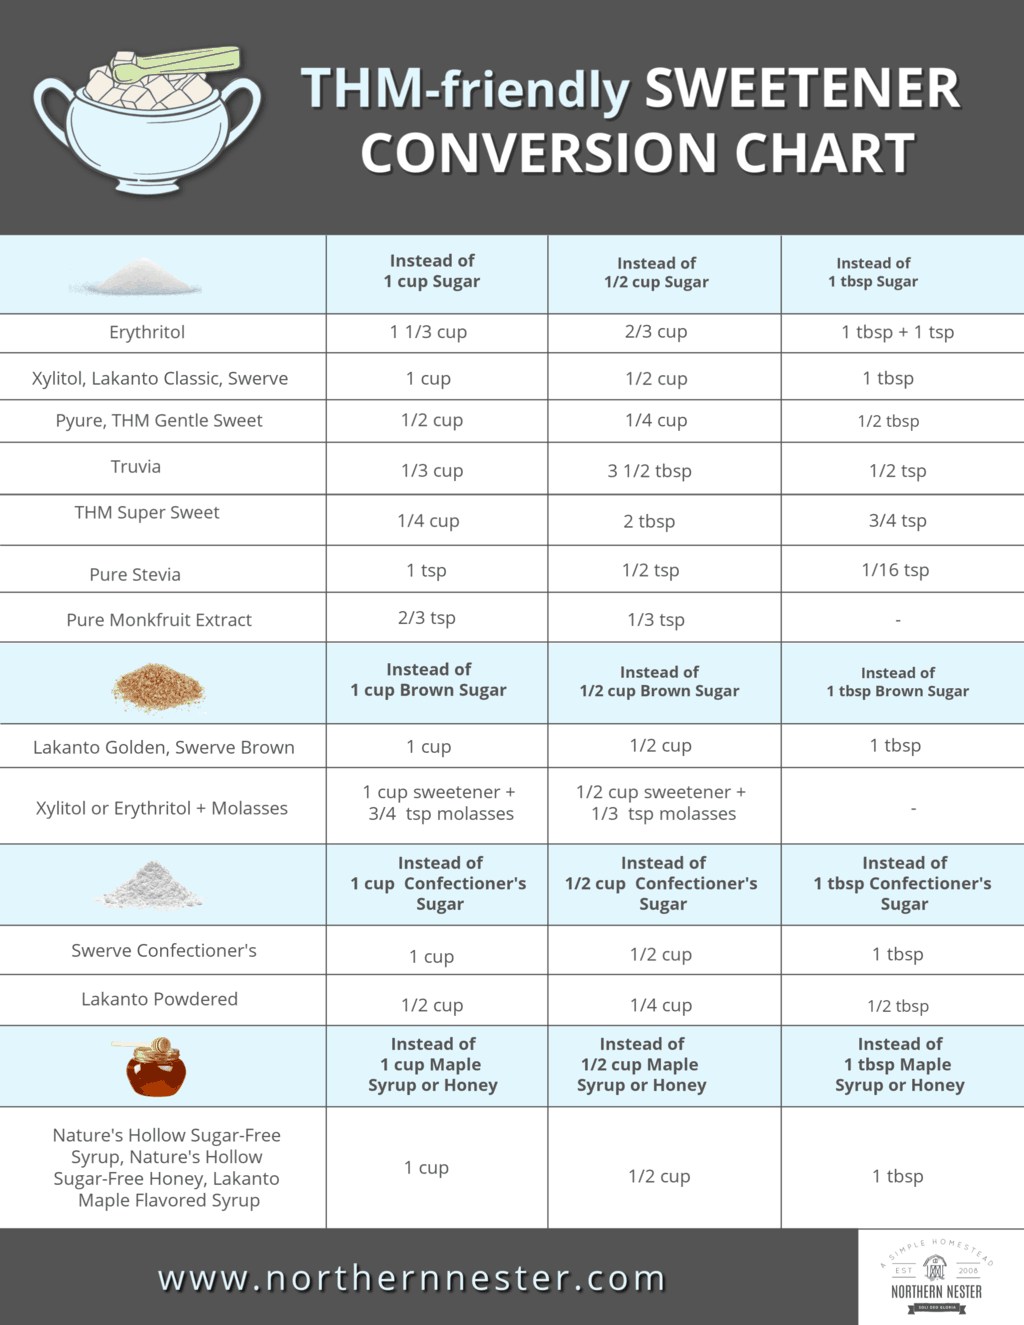 thm sweetener conversion chart